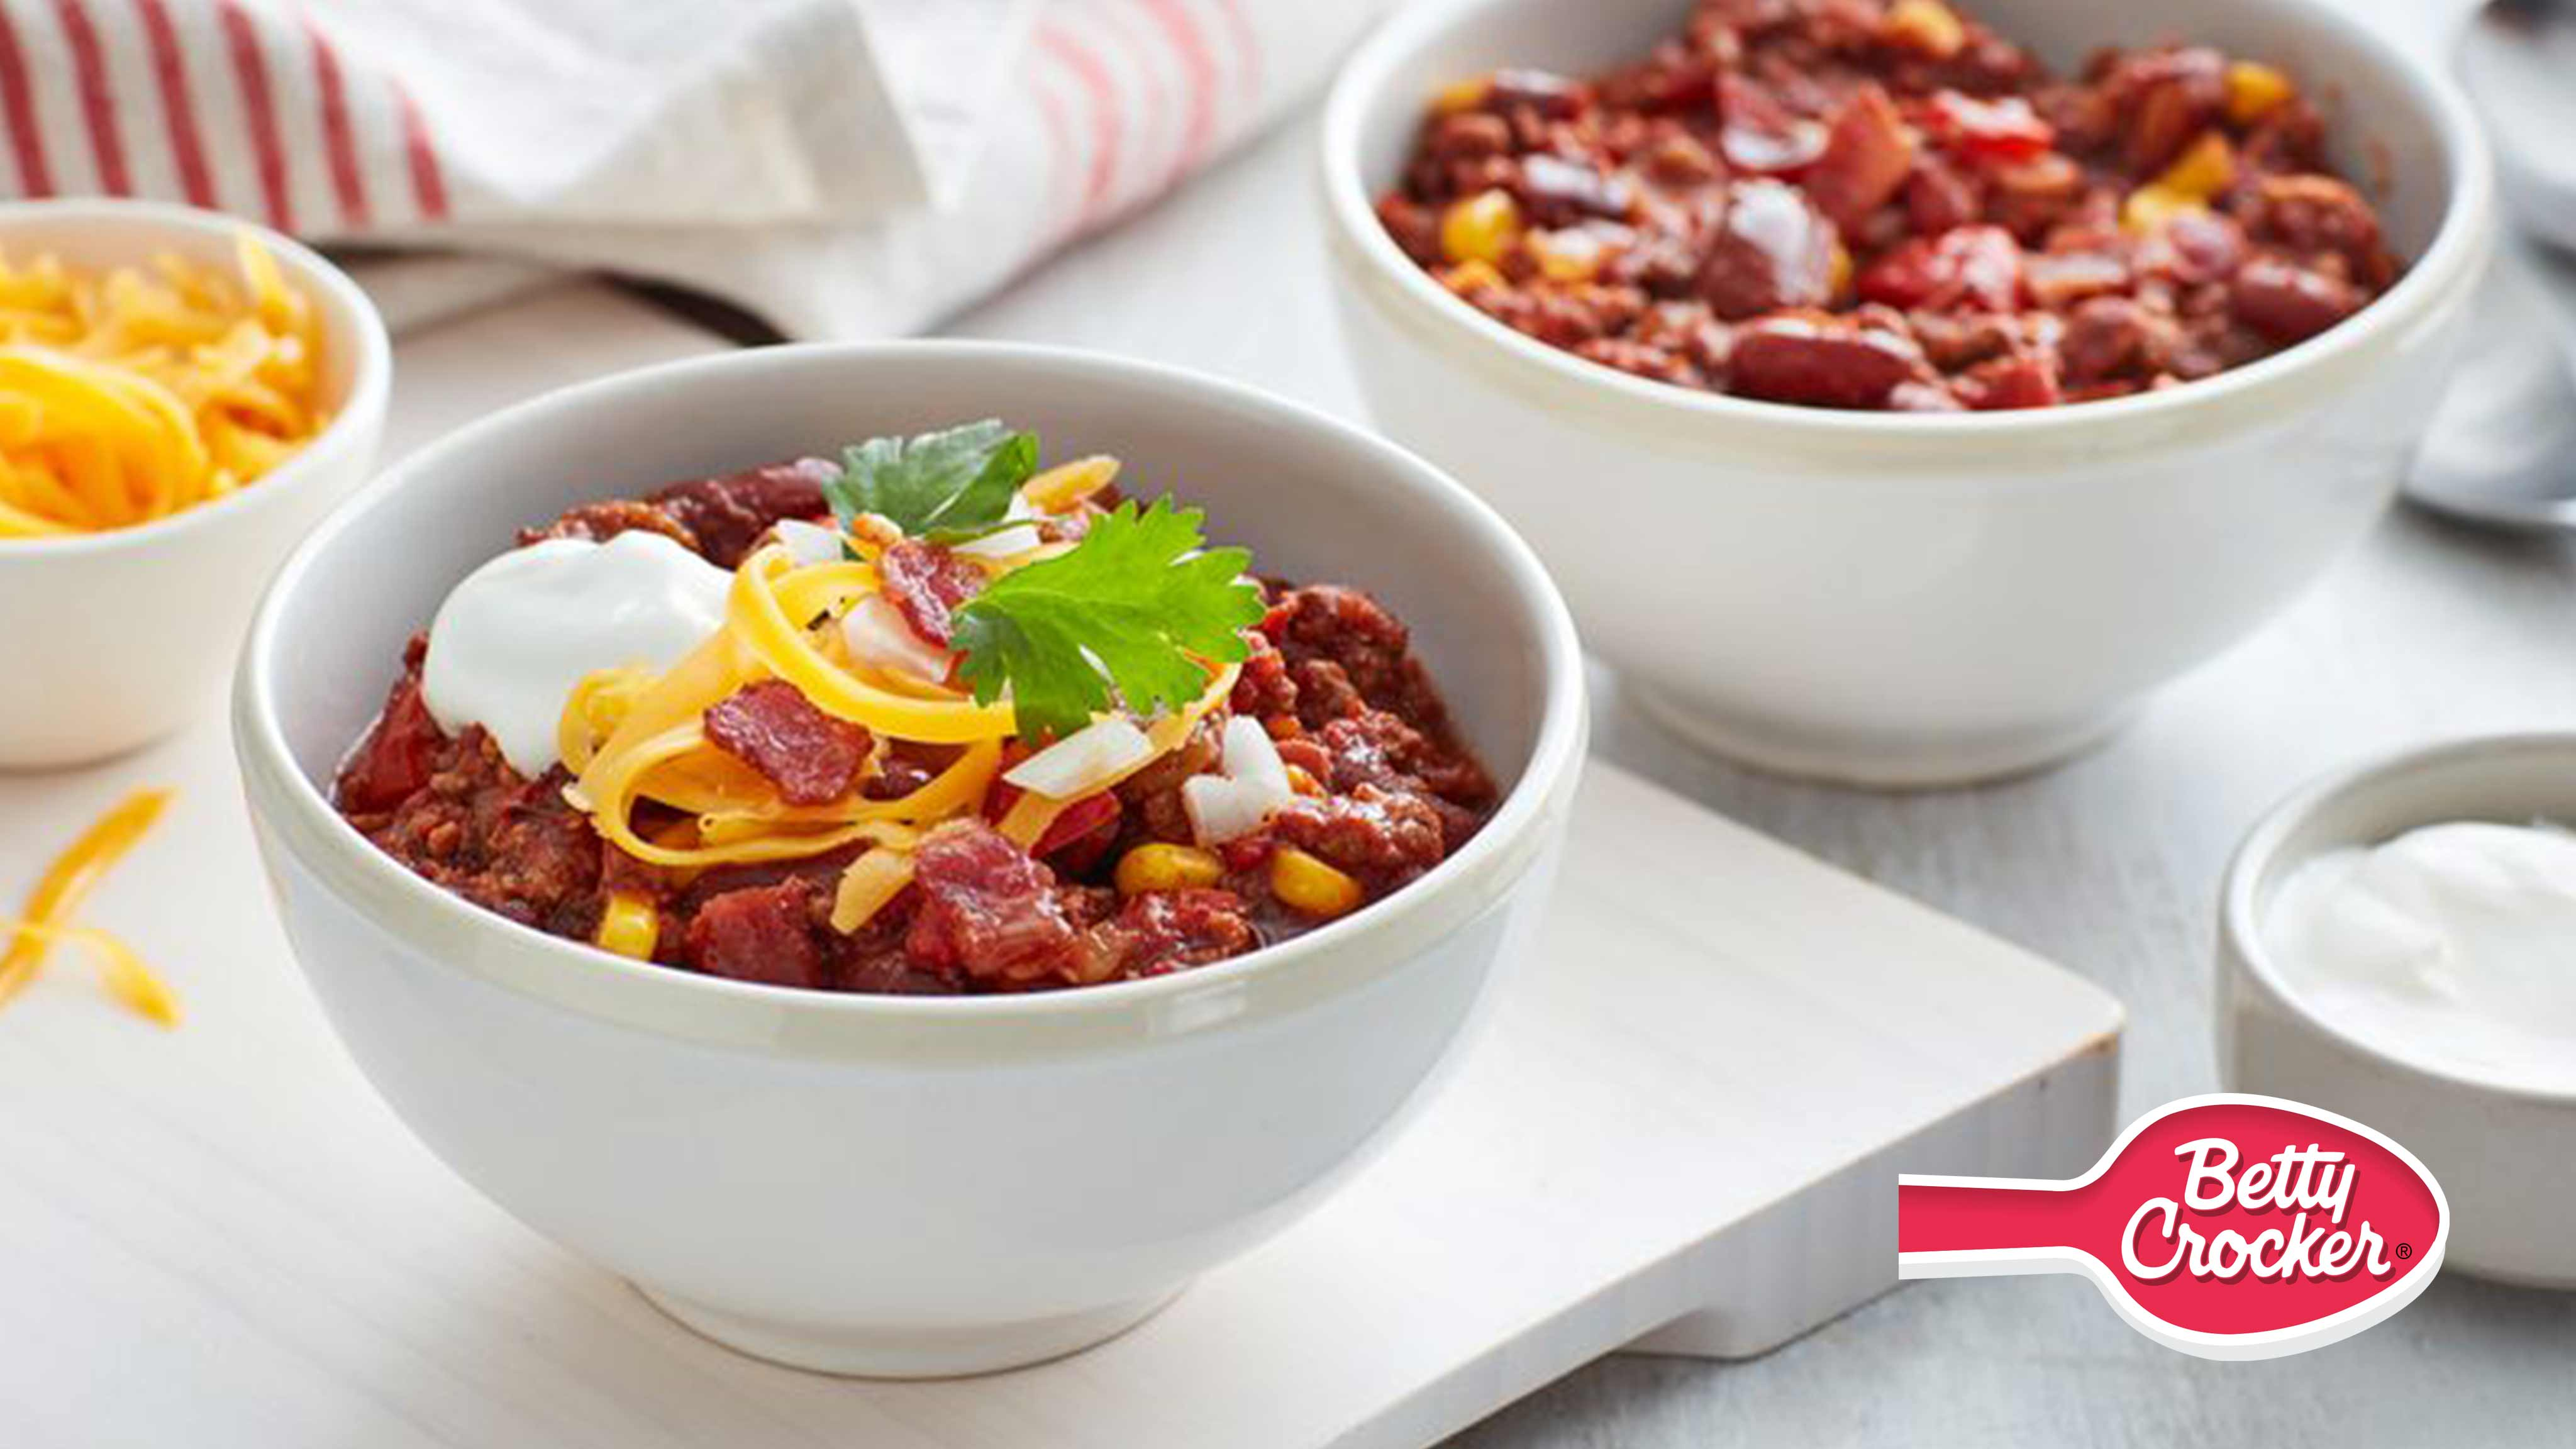 Image for Recipe Slow Cooker Bacon Chili